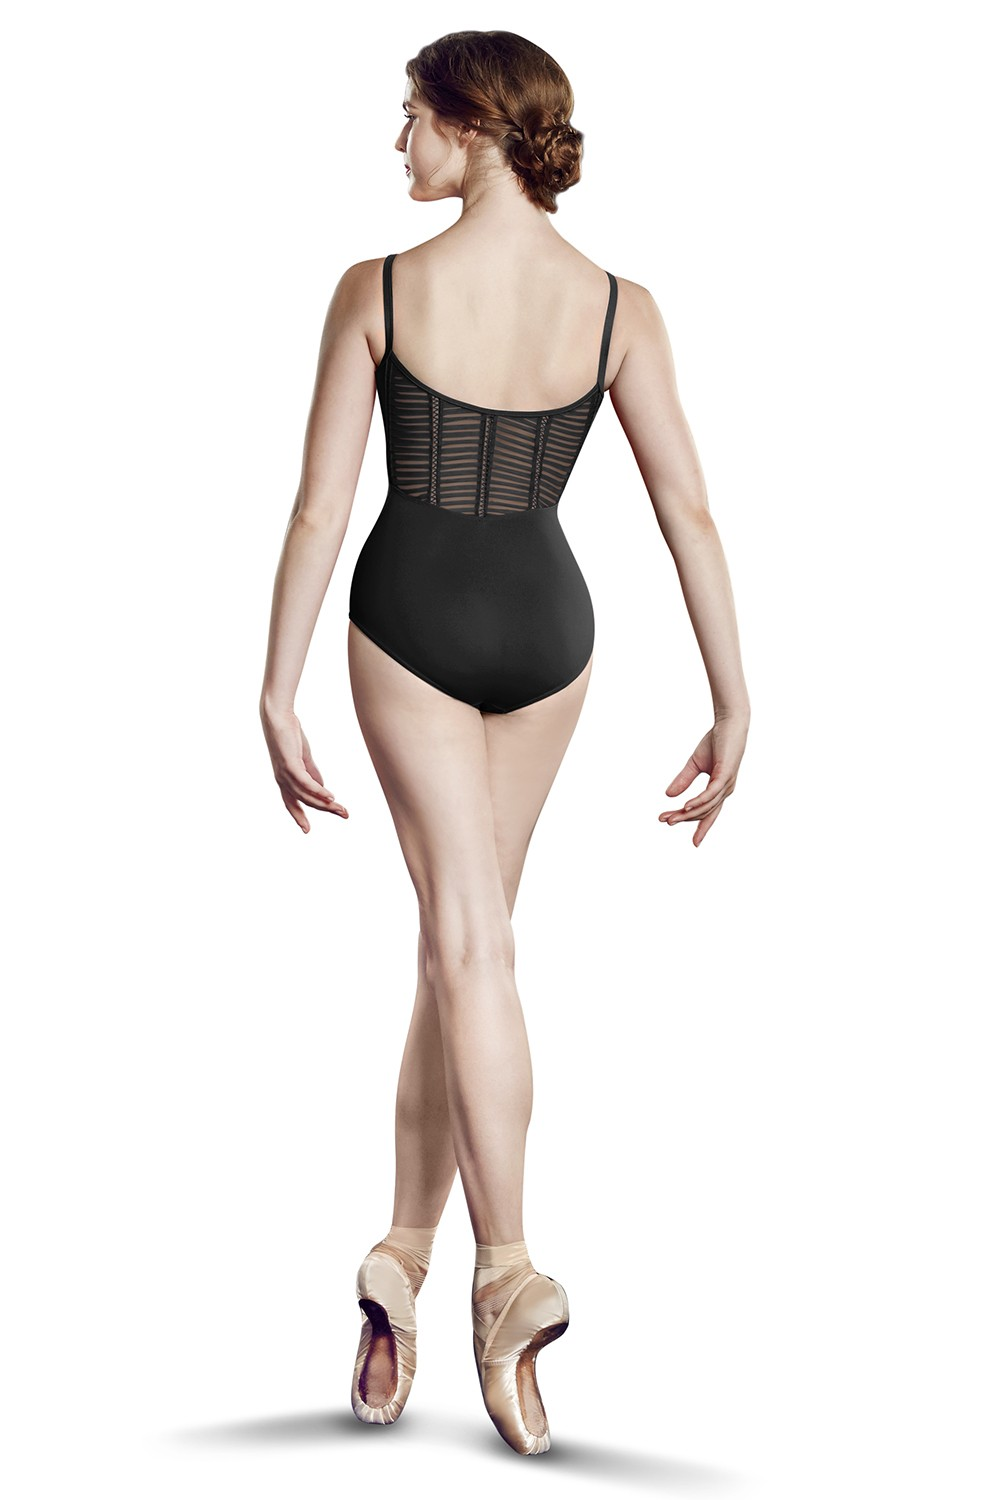 Justaucorps A Bretelles Elastique Z  Womens Camisole Leotards